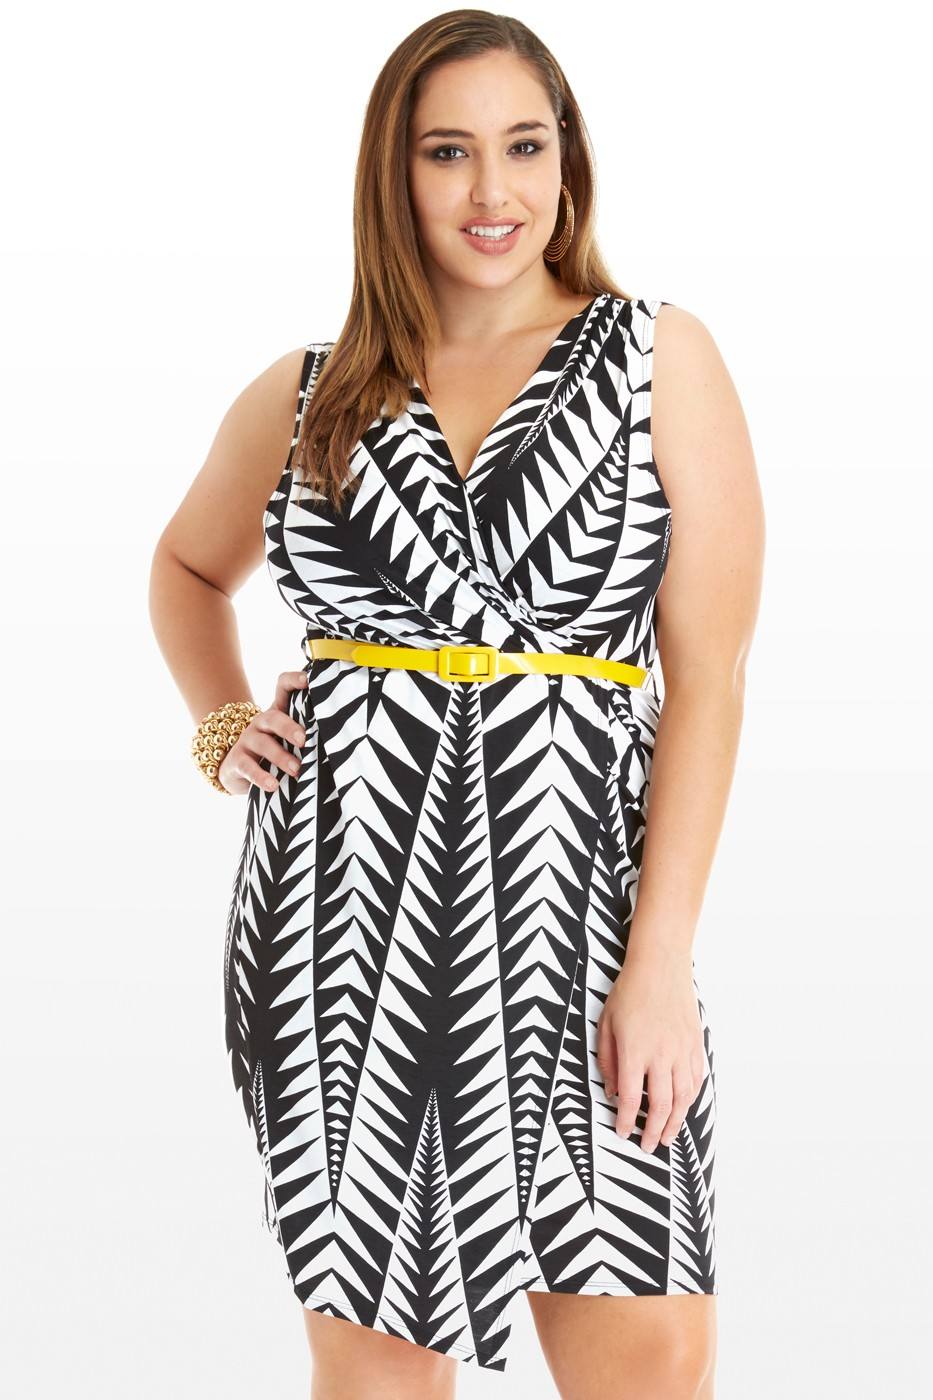 tips to tackling young plus size clothing4 - Tips to Tackling Young Plus Size Clothing